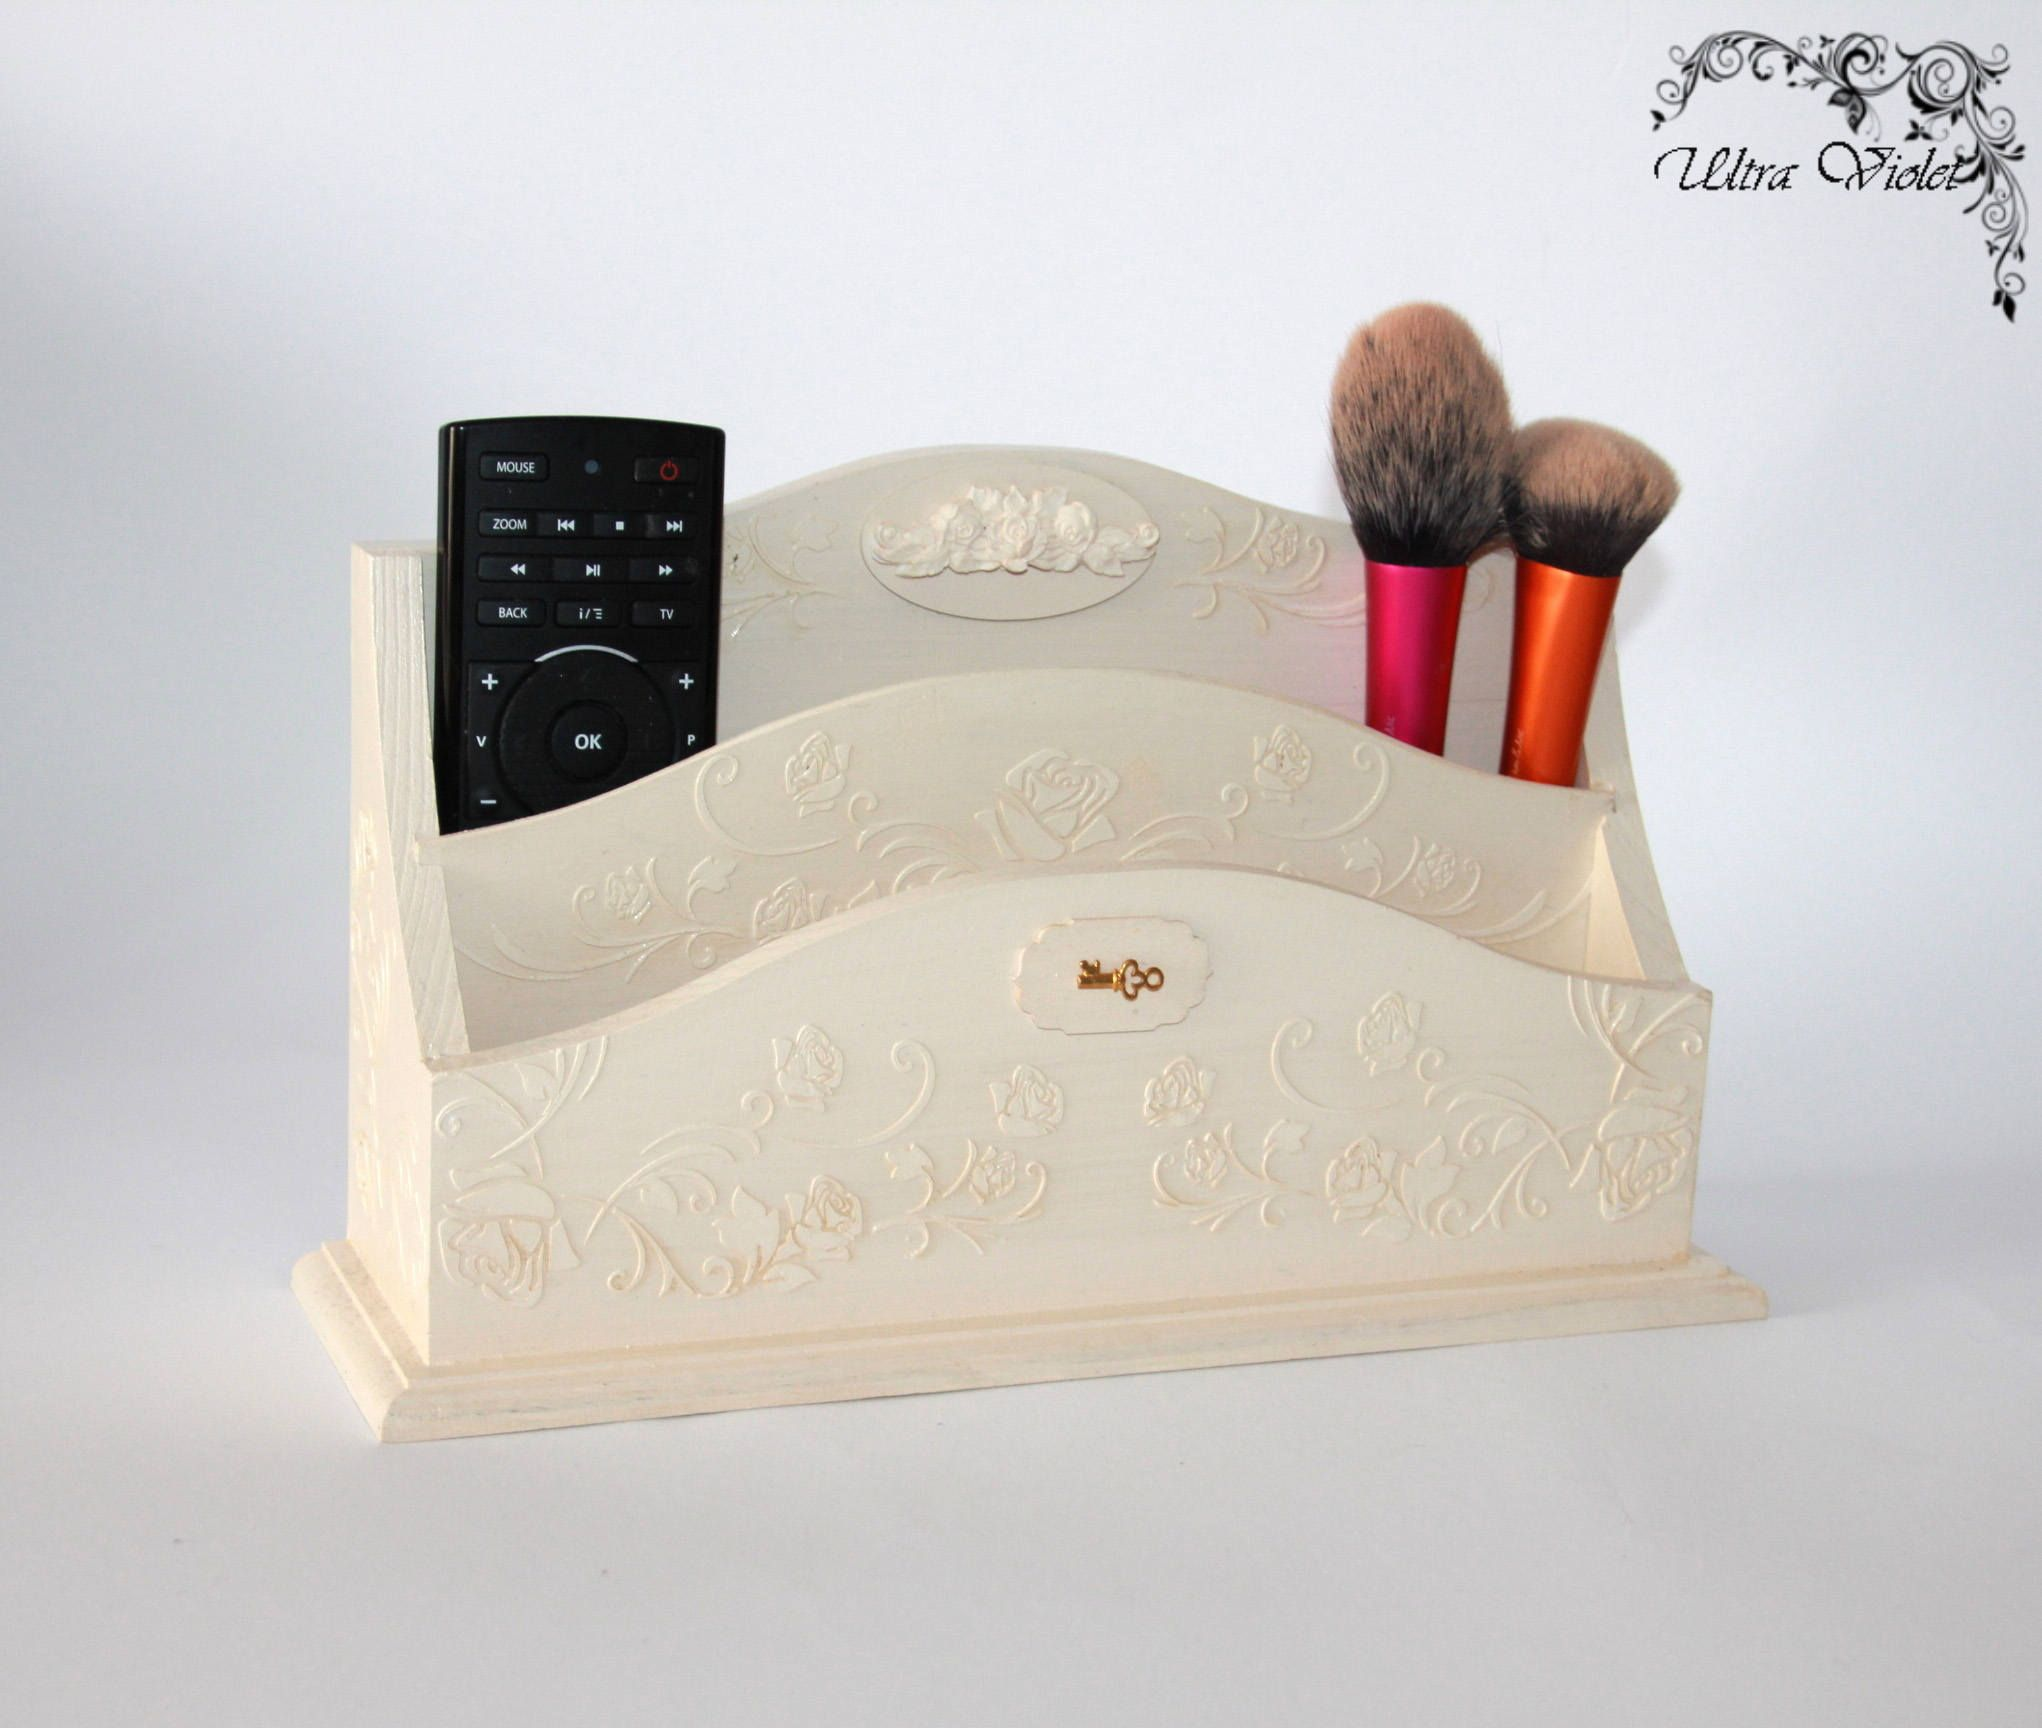 Desk Organizer, Desk Storage, Business Card Holder, Clock, Office Supplies,